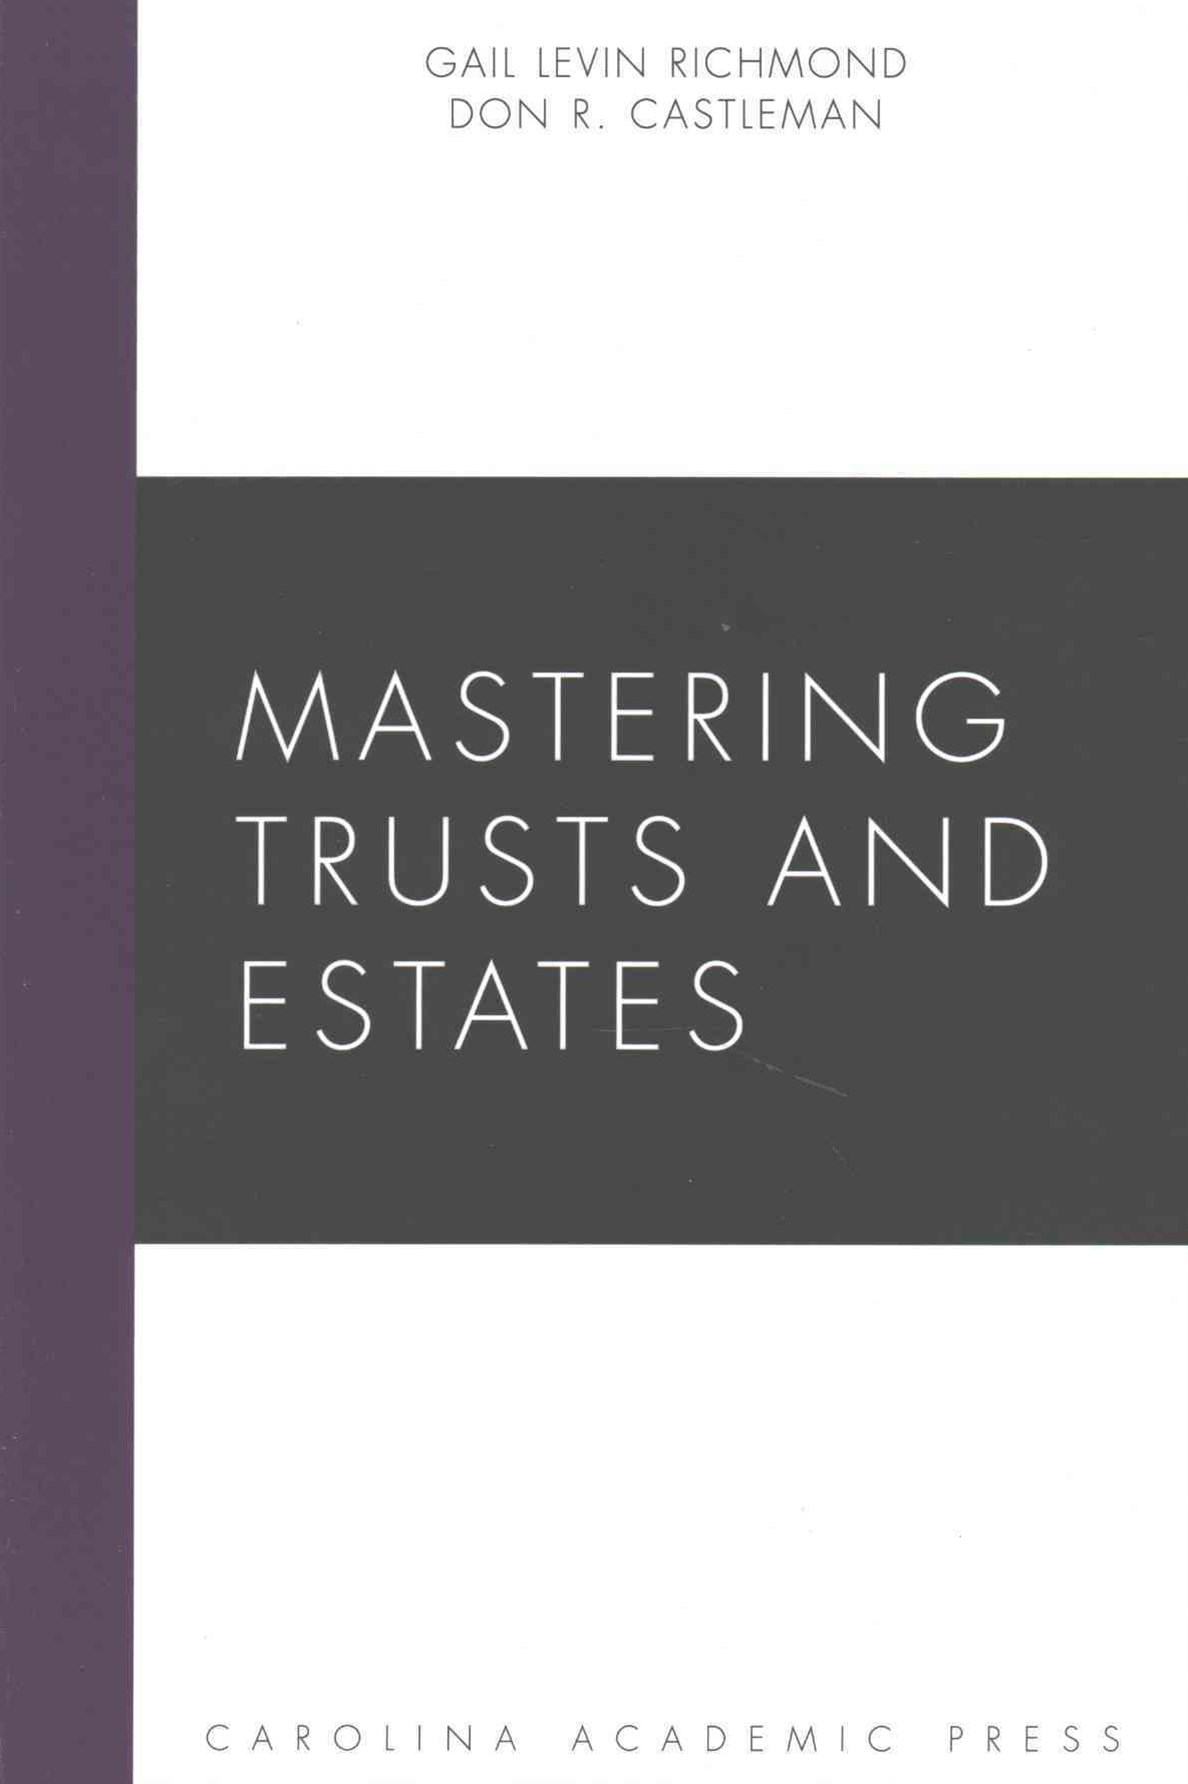 Mastering Trusts and Estates